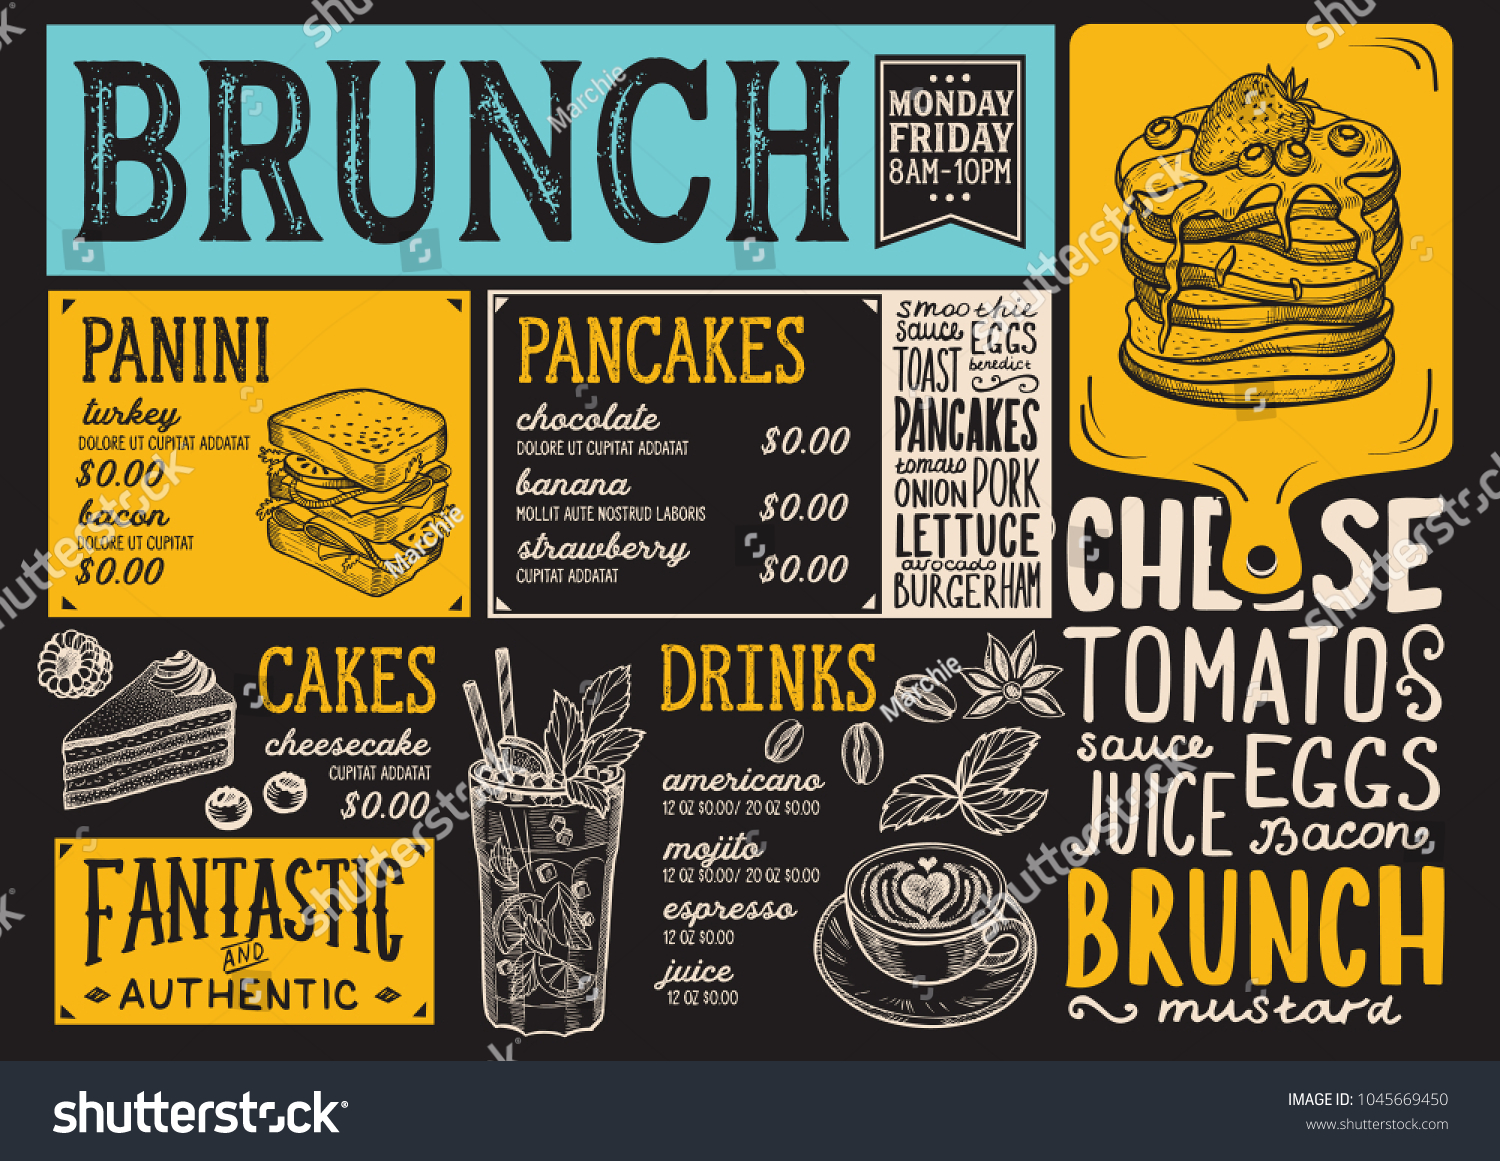 brunch restaurant menu vector food flyer のベクター画像素材